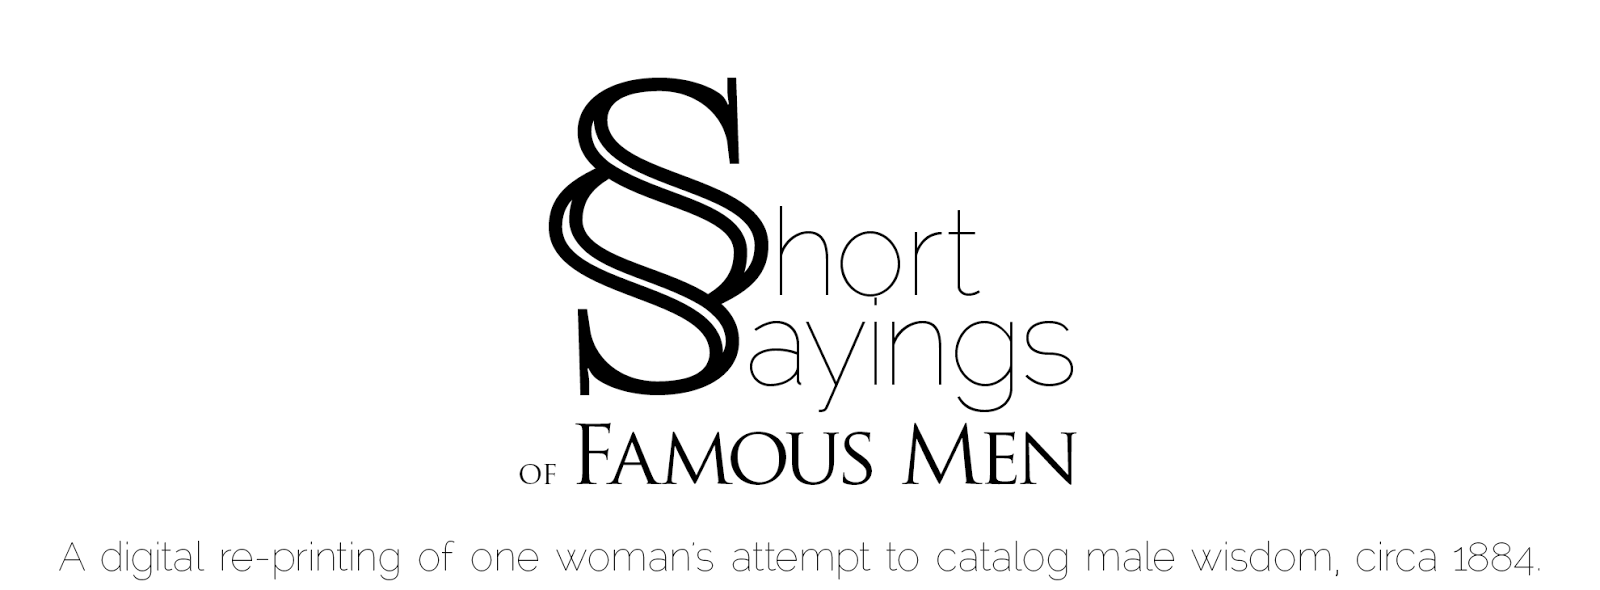 Short Sayings of Famous Men